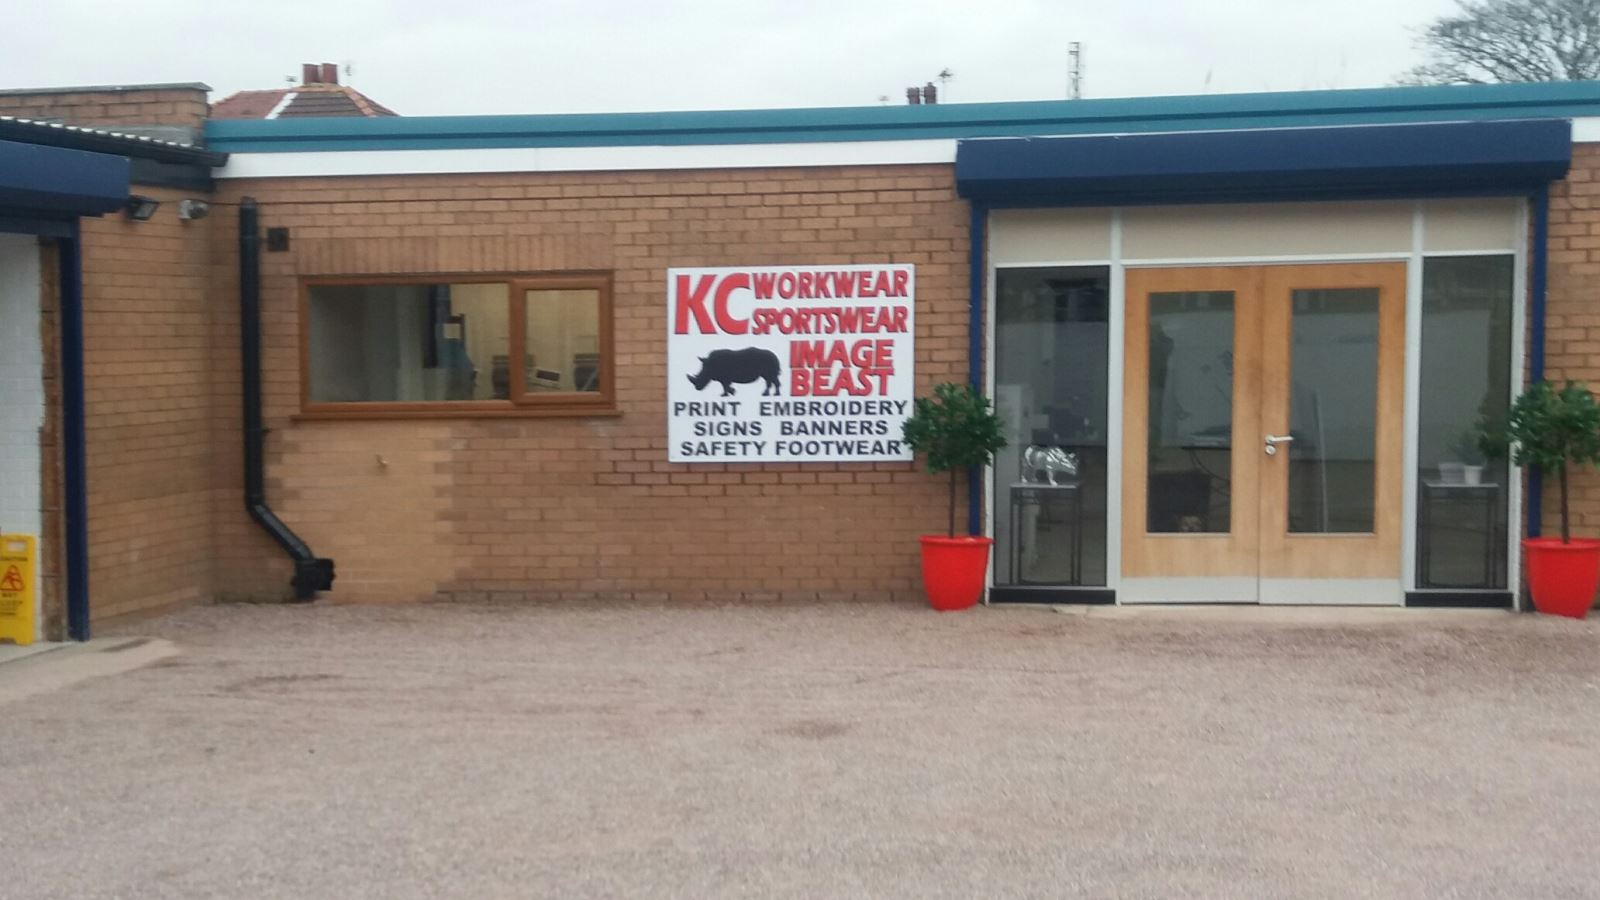 Office for KC Workwear in Birkdale, Southport, Merseyside.